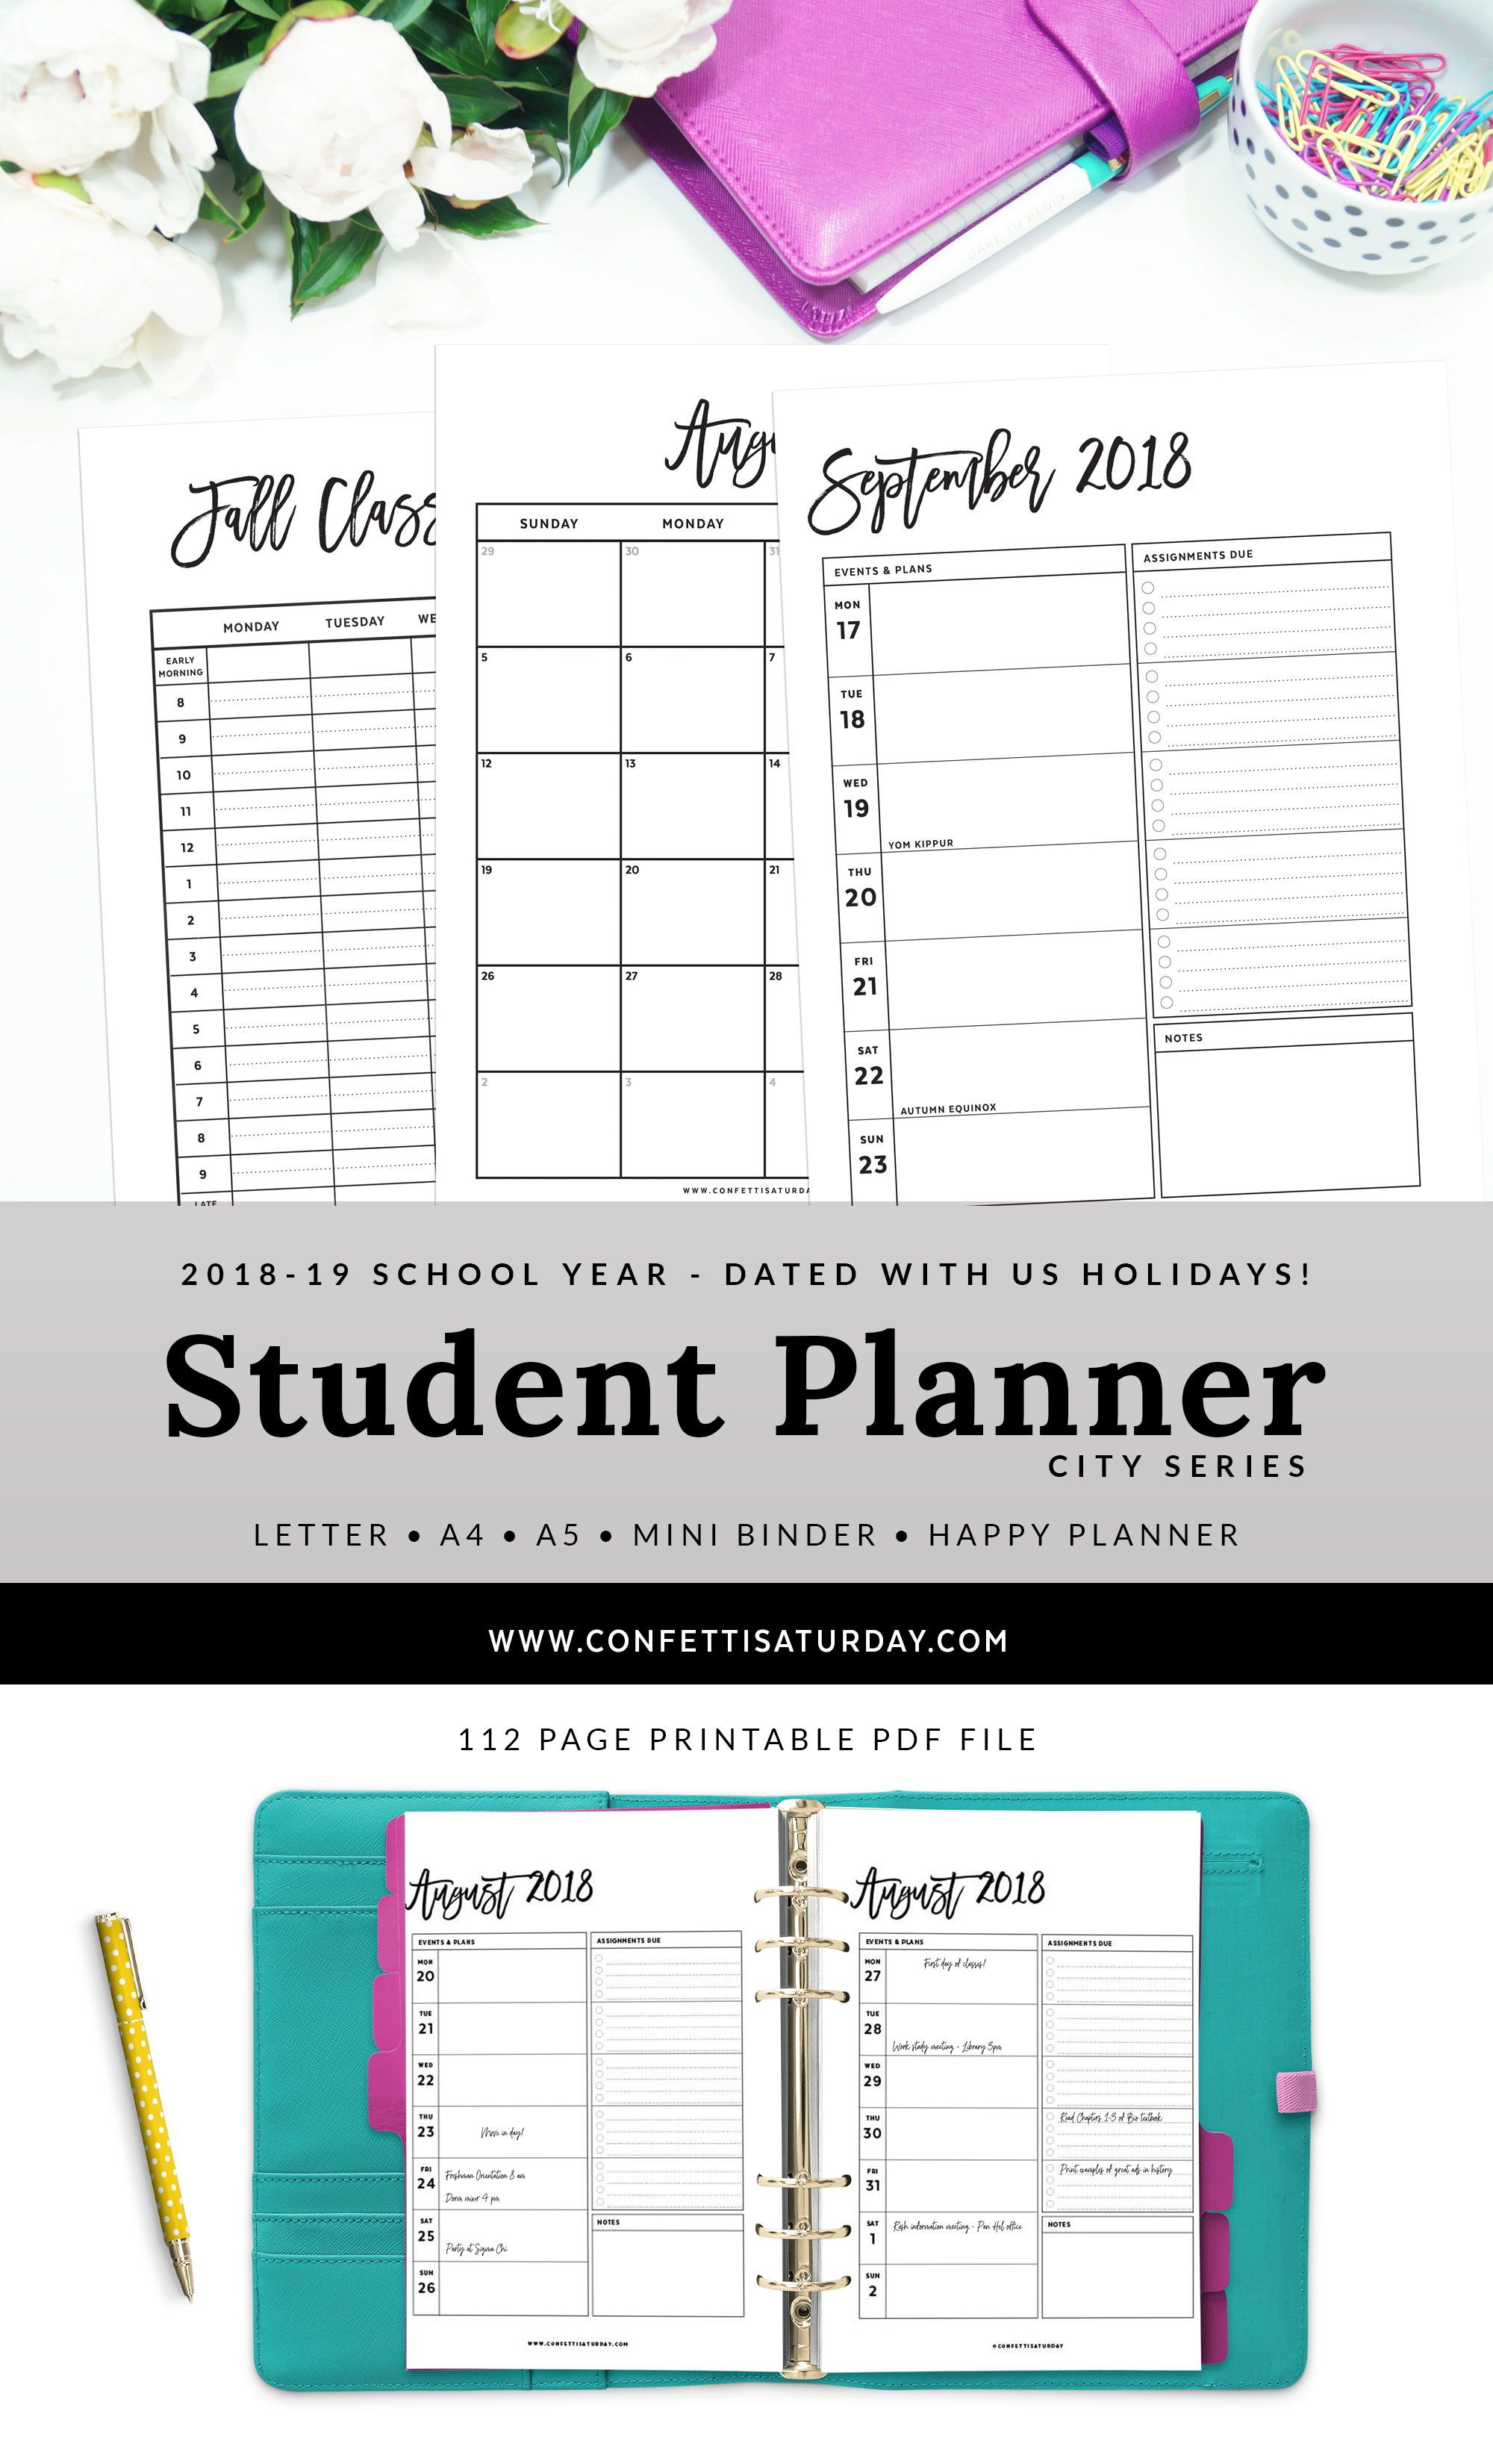 Printable Student Planners For 2018 2019 School Year Great For